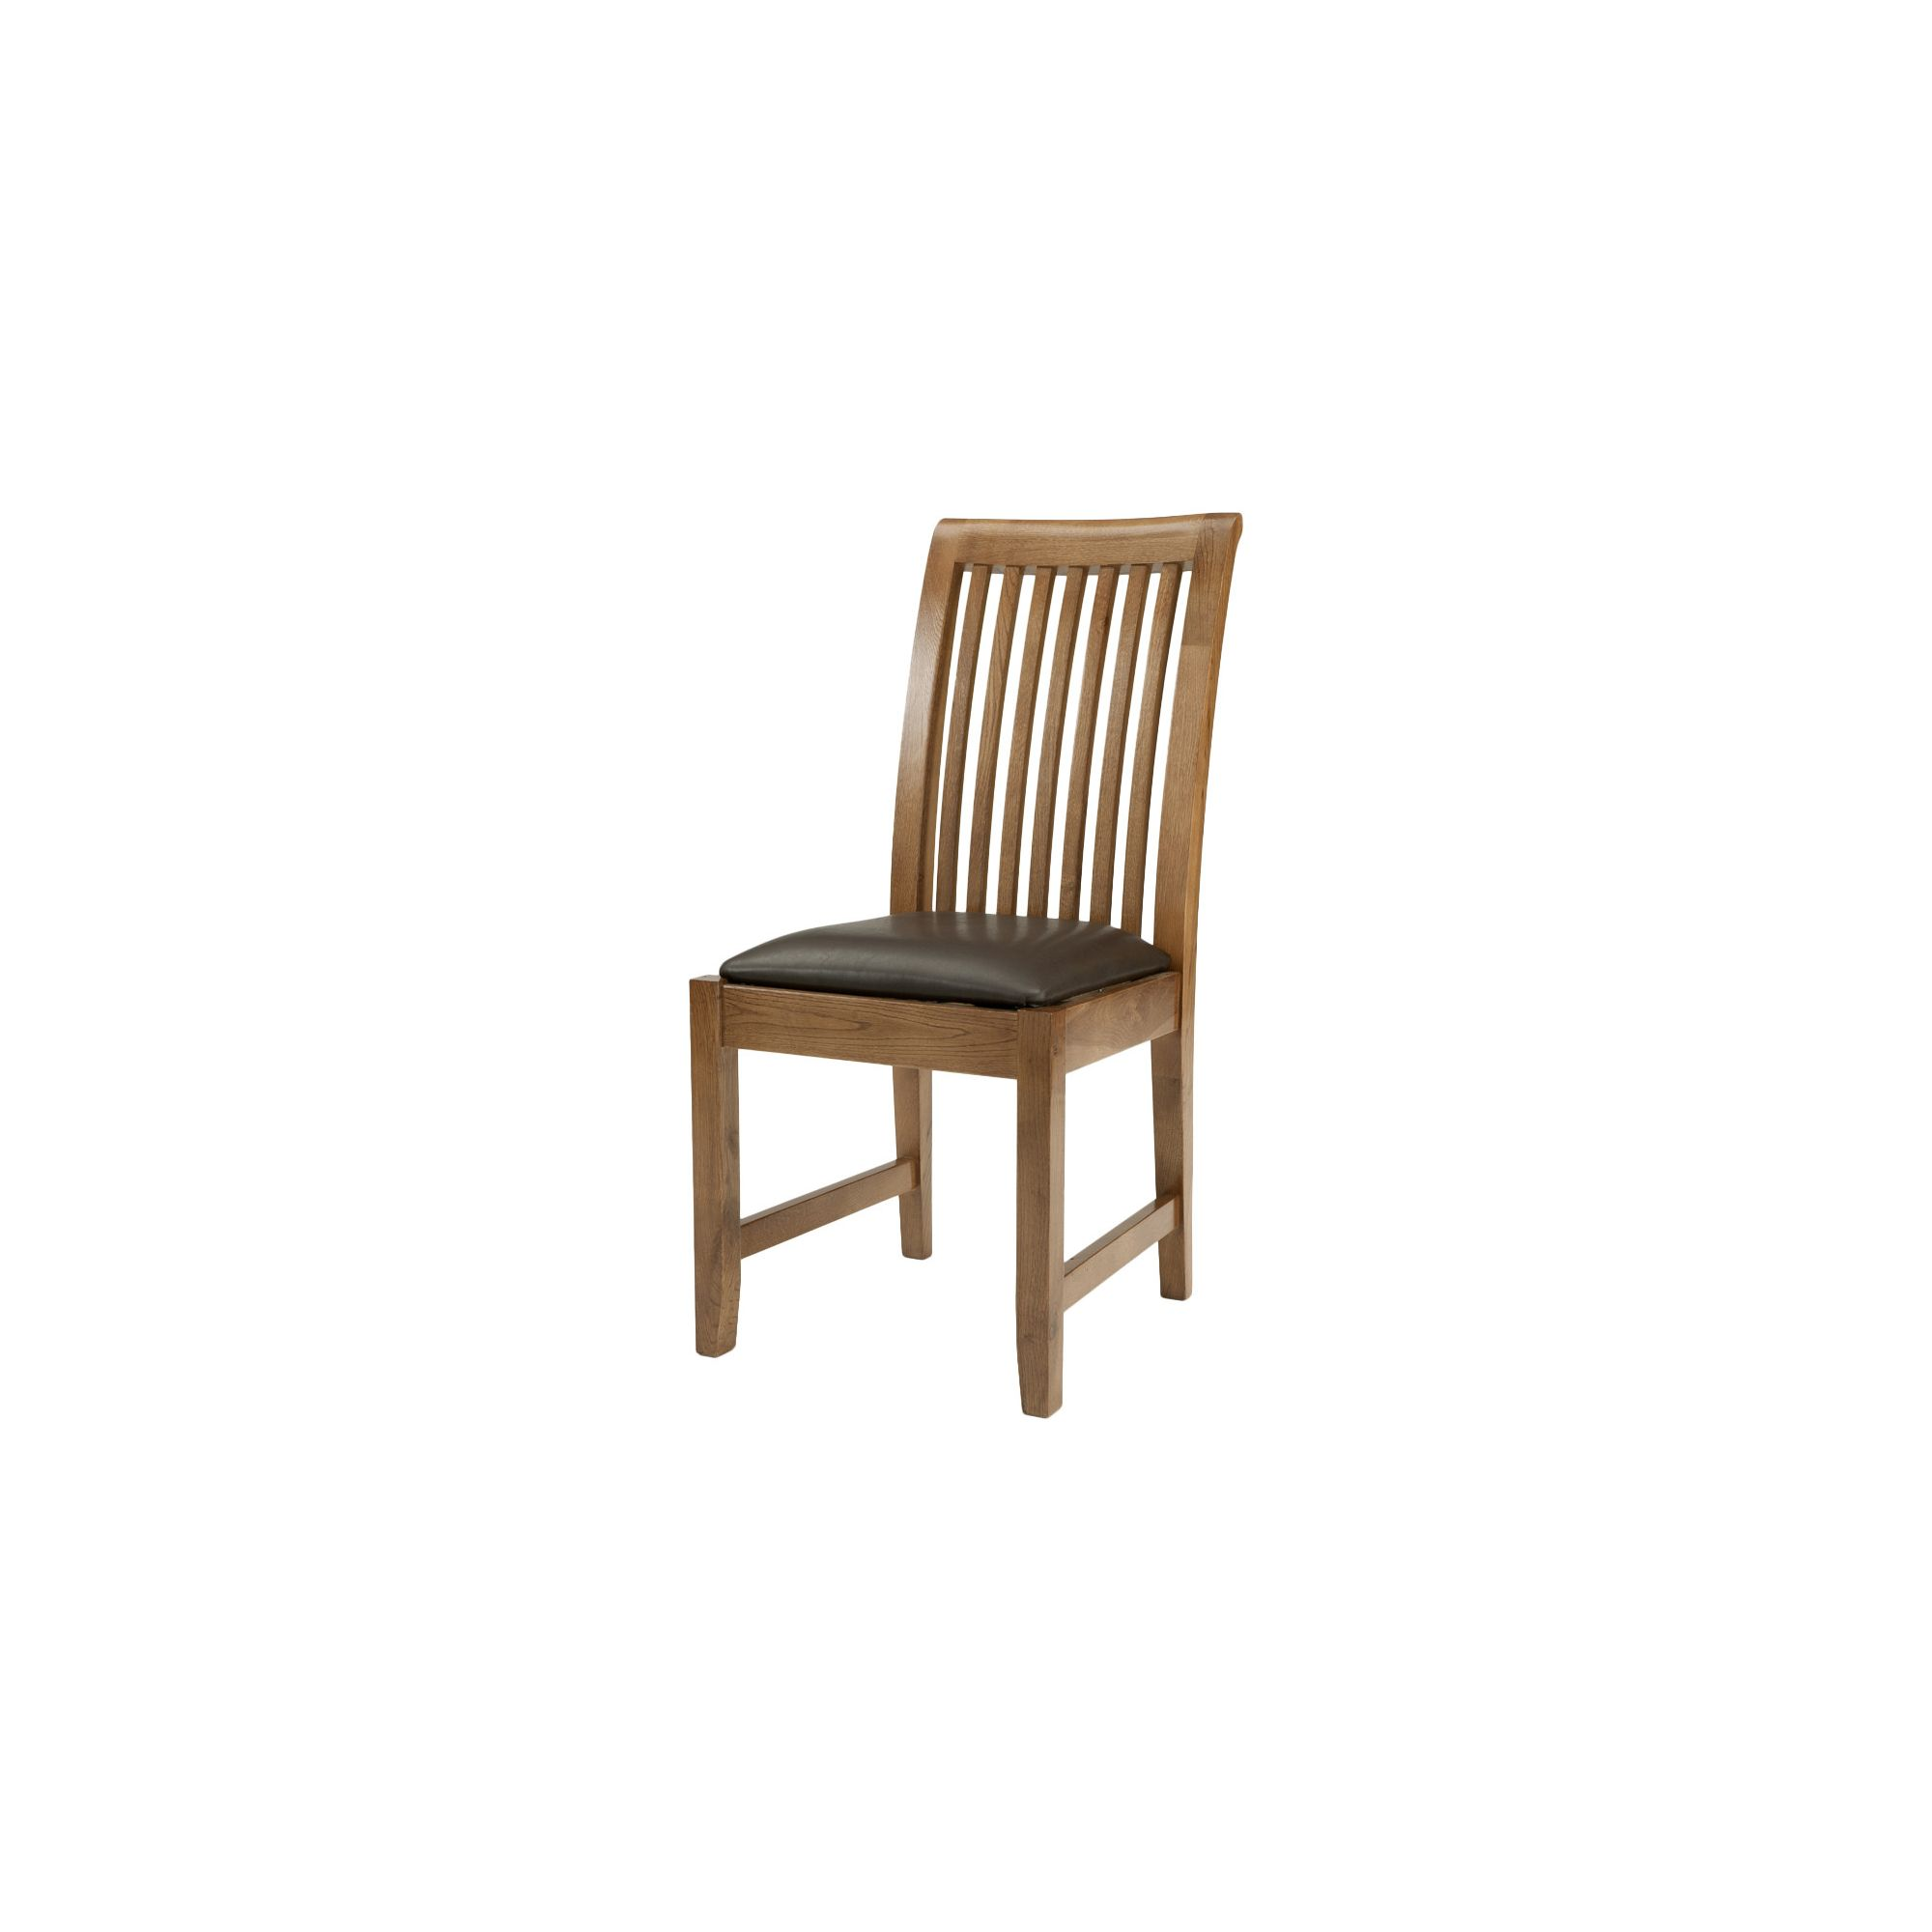 Originals Bretagne Dining Chair (Set of 2)